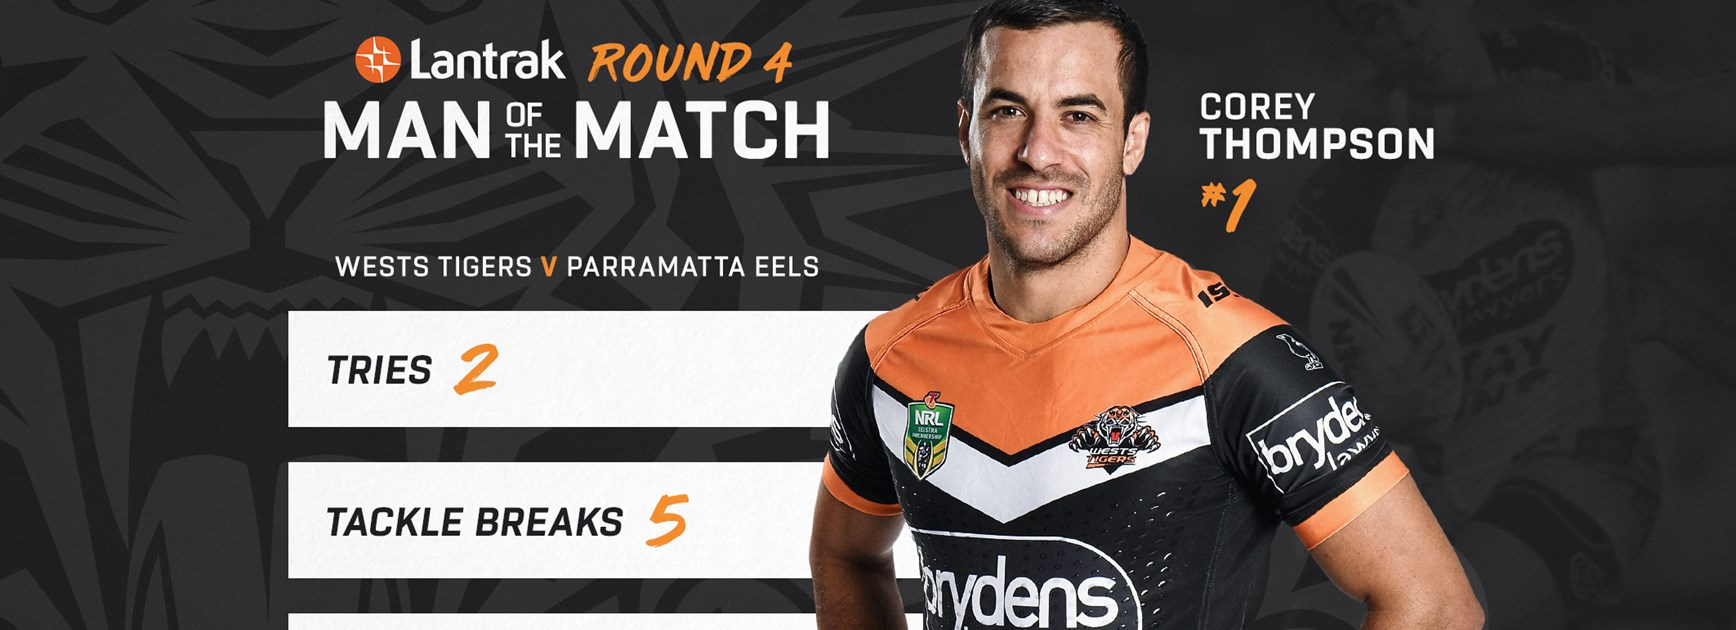 Lantrak Man of the Match: Round 4